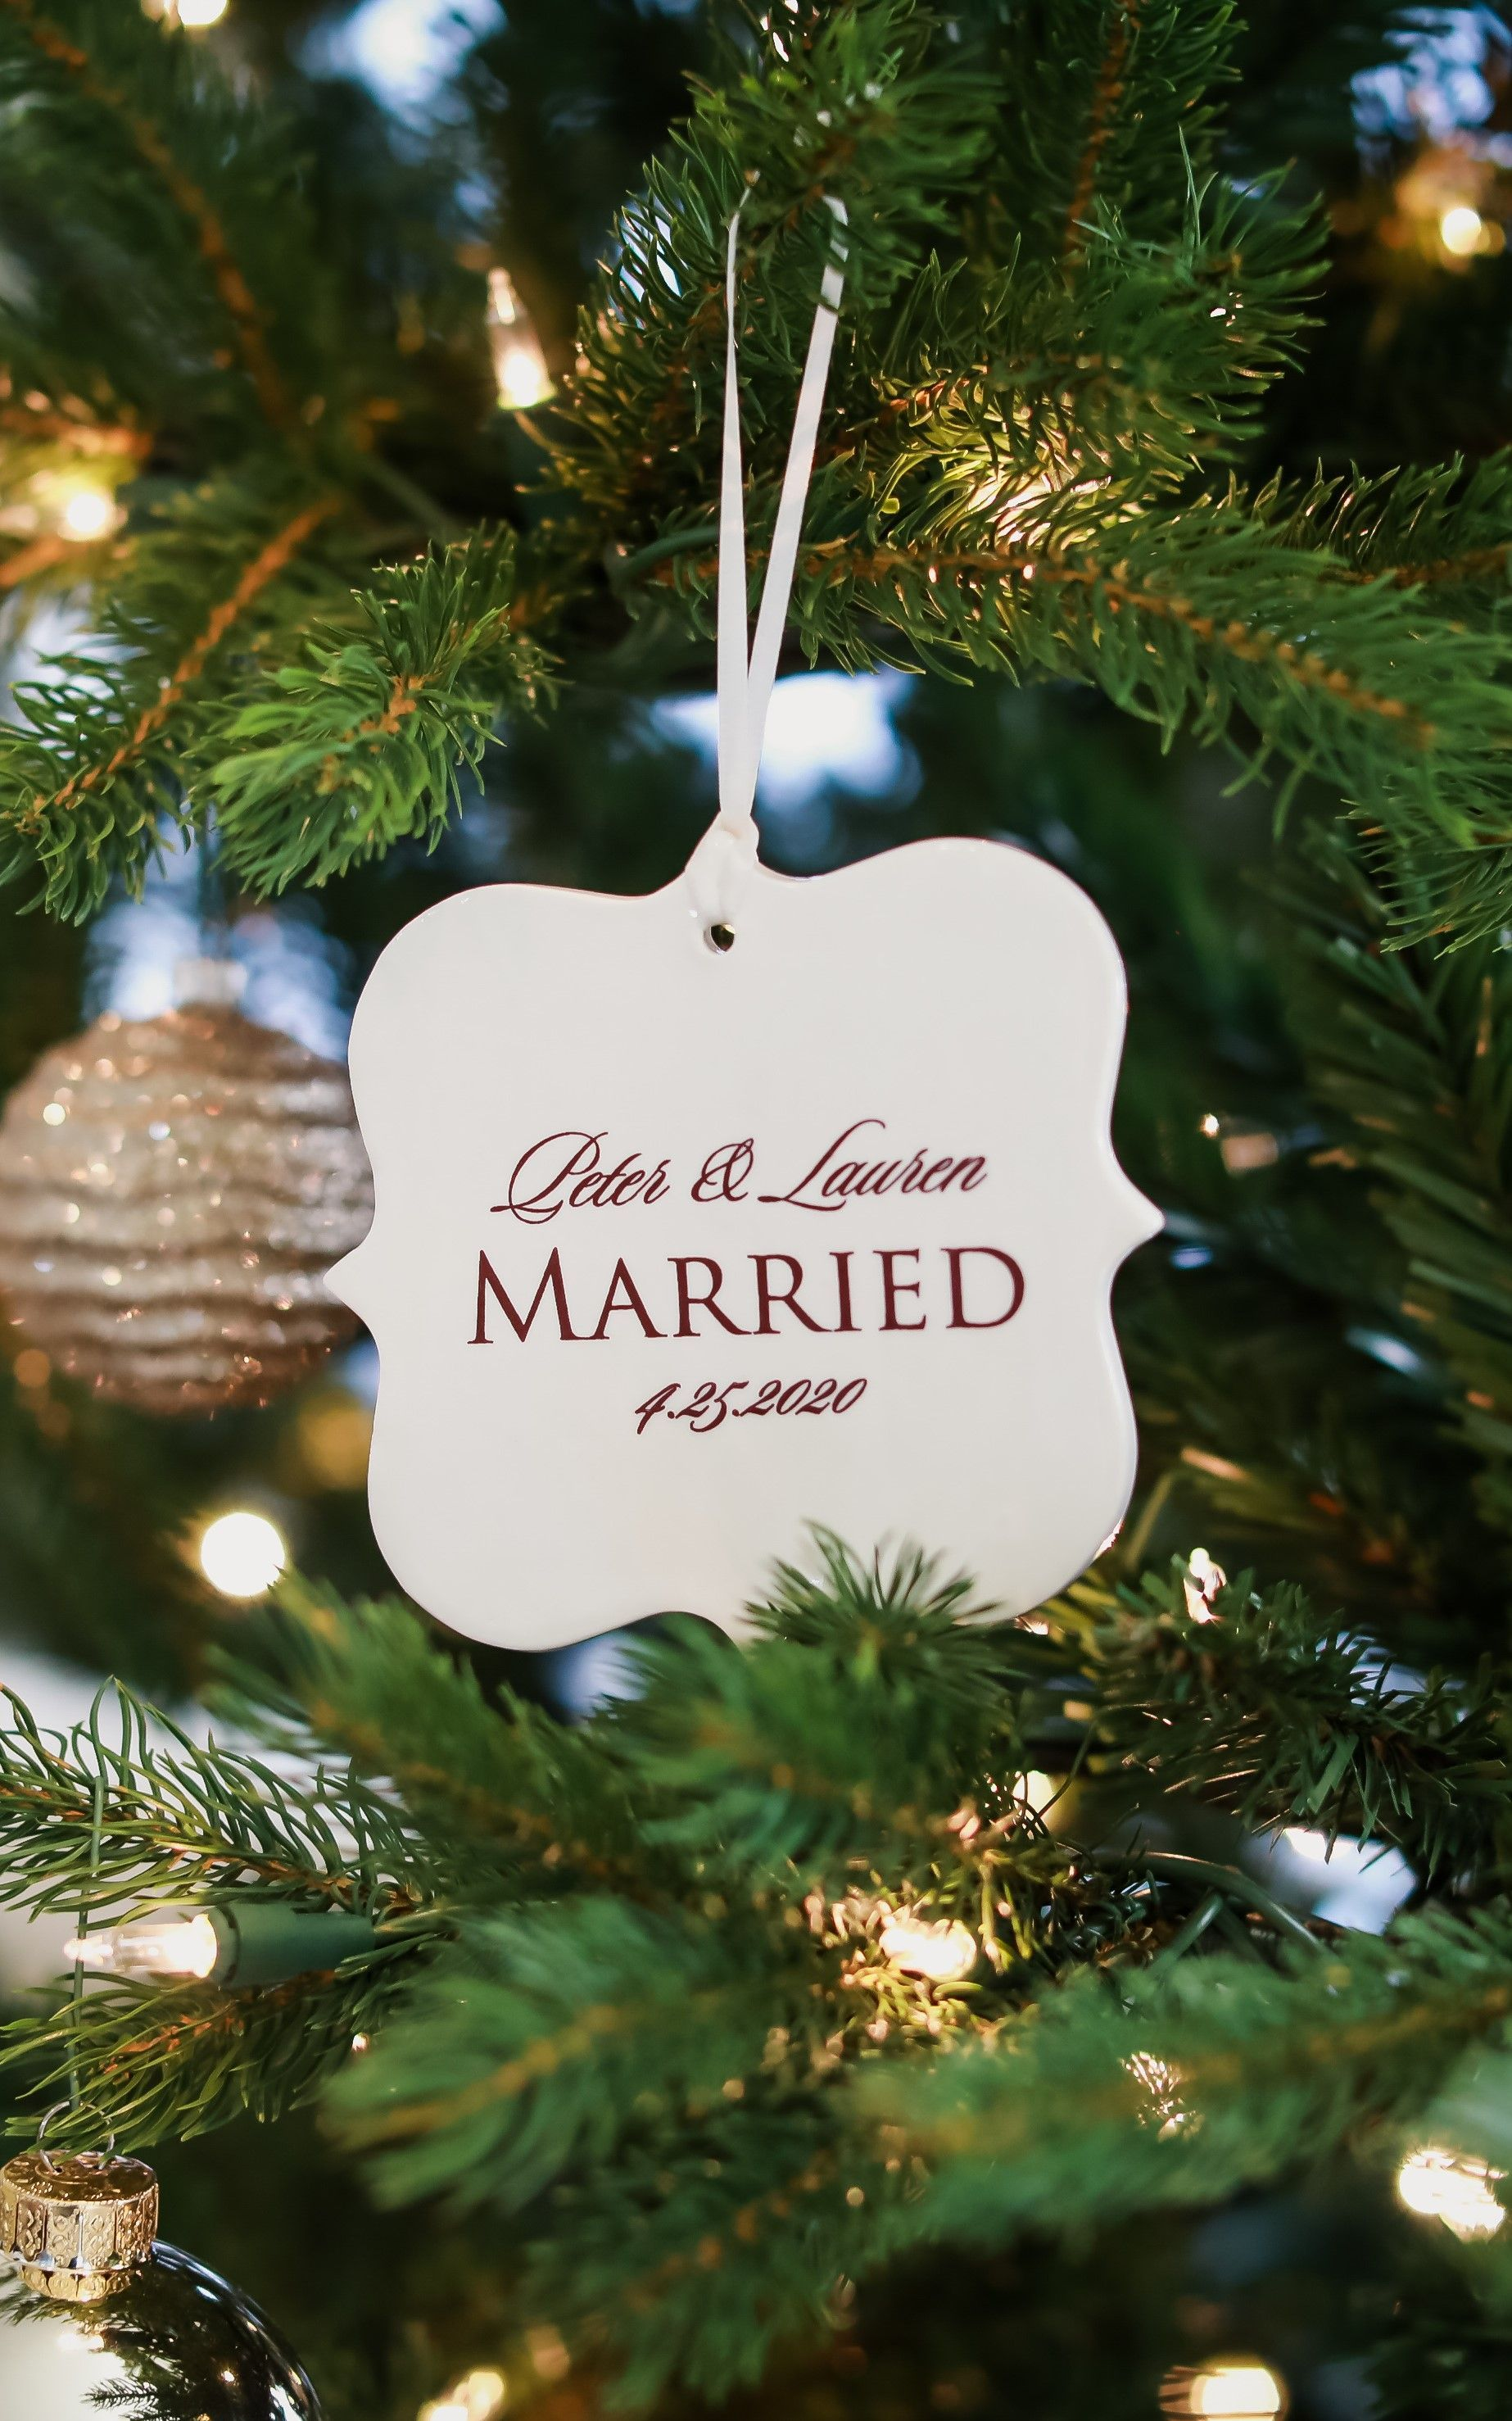 Just Married Ornament Our First Christmas Wedding Ornament Newlywed Ornament Christmas Gift Personalized Christmas Ornaments Wedding Ornament Personalized Wedding Gifts